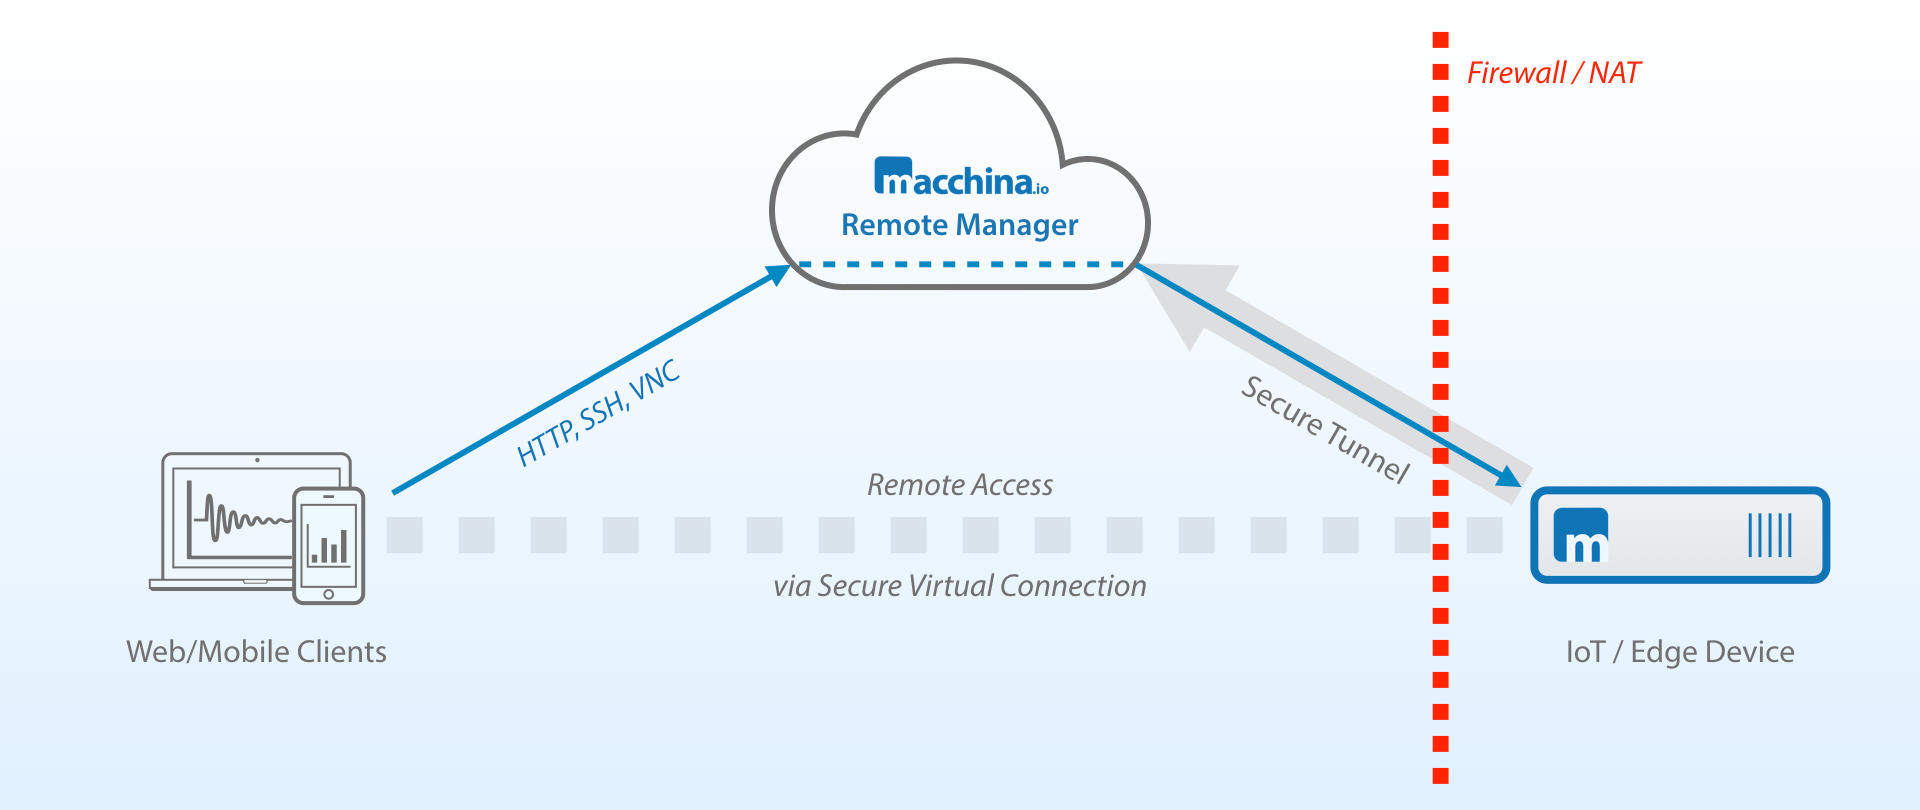 macchina.io Remote Manager - Secure Remote Access to IoT Edge Devices